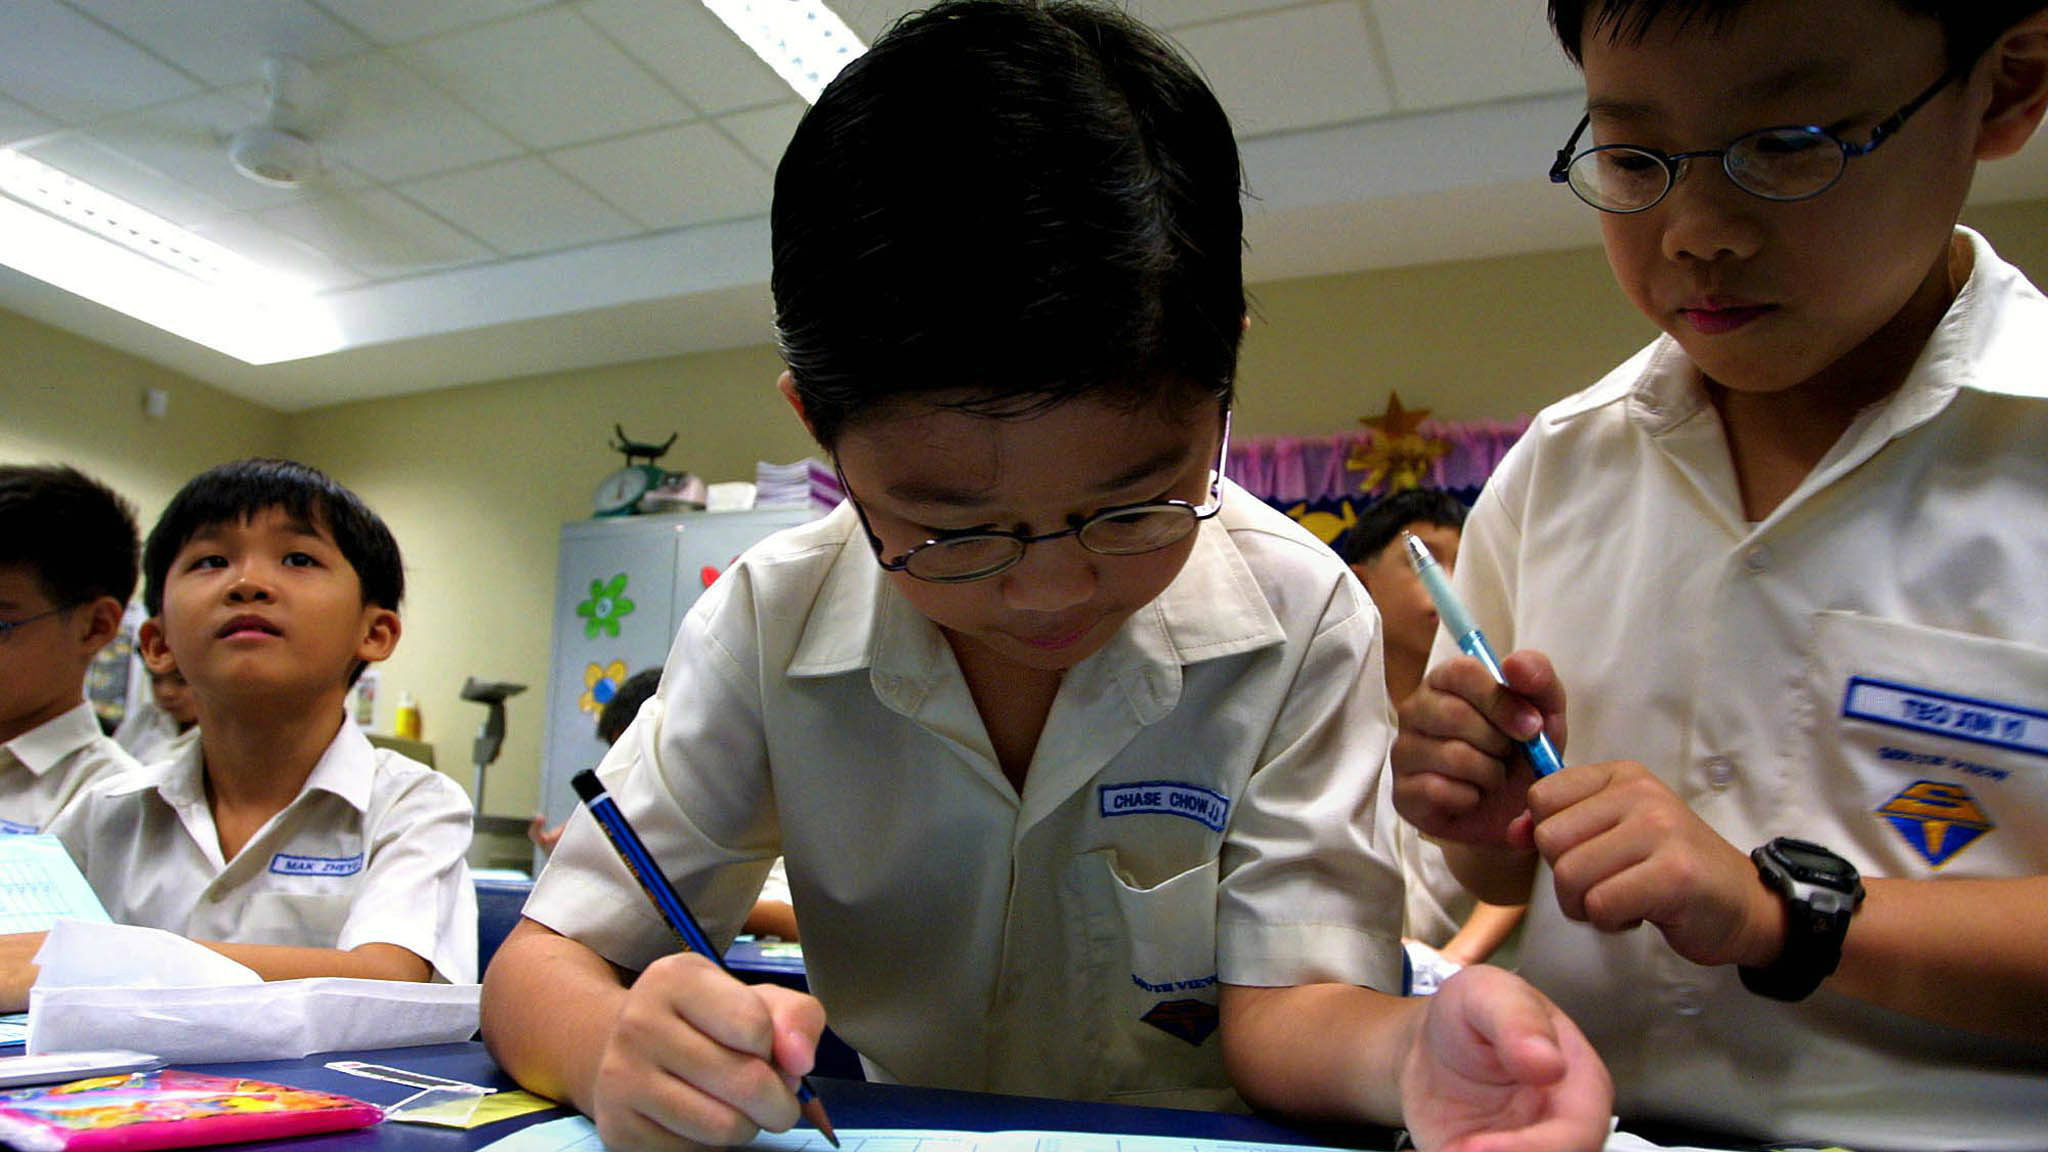 Children at the South View primary school in Singapore keep daily notes about their temperature, Monday 12 May 2003, as part of additional pre-cautionary measures taken by schools in the fight against SARS.